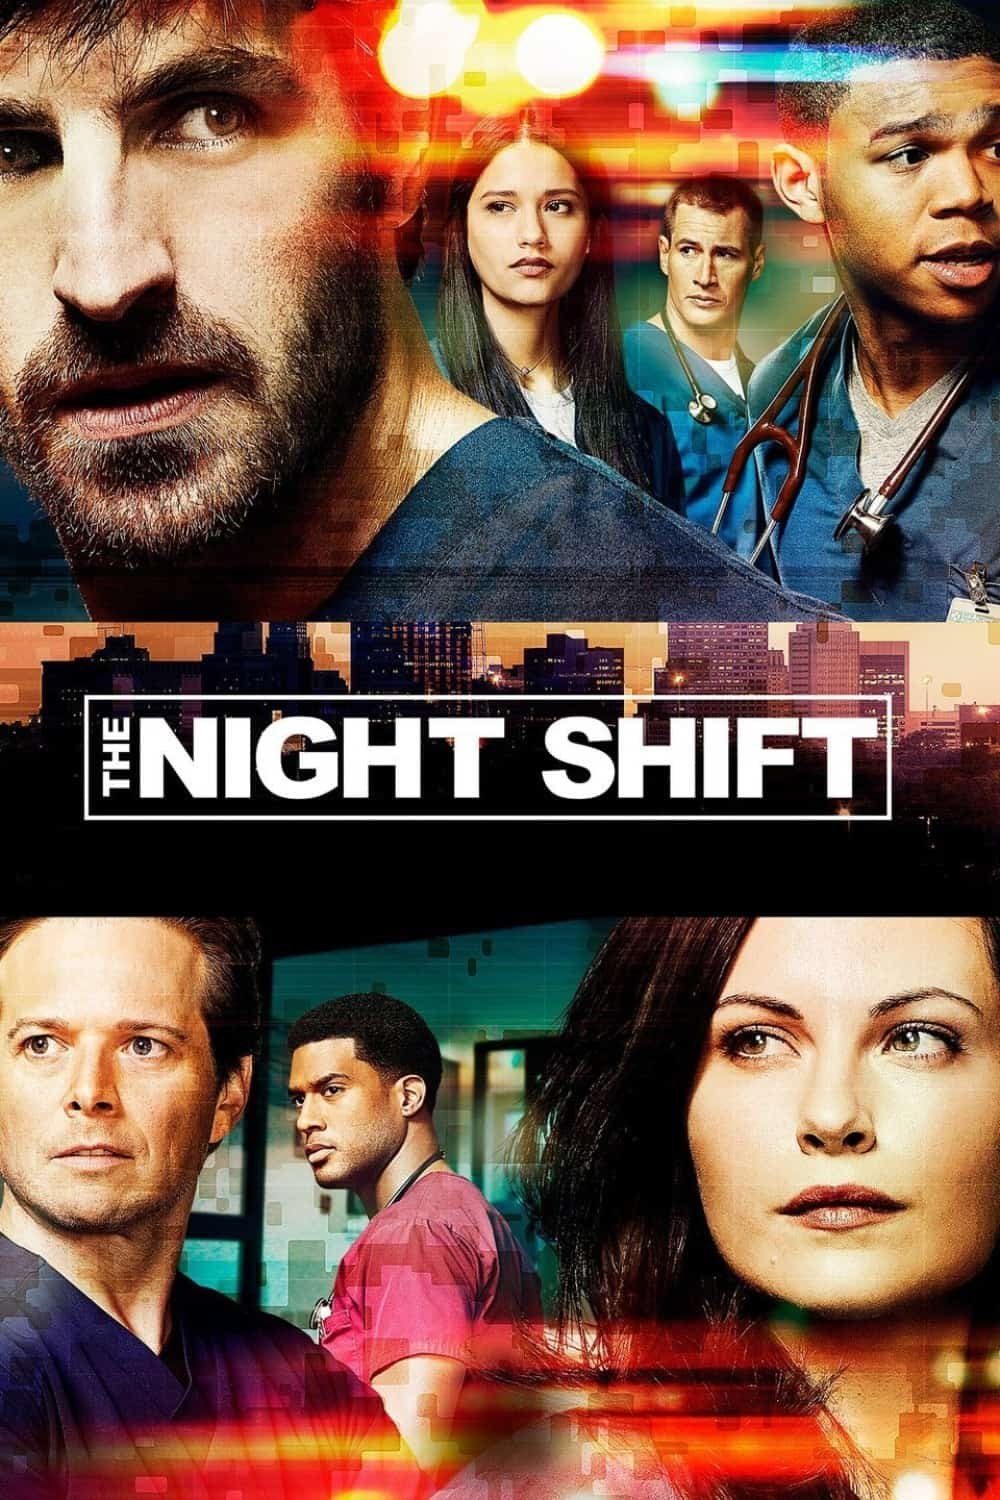 The Night Shift, 2014